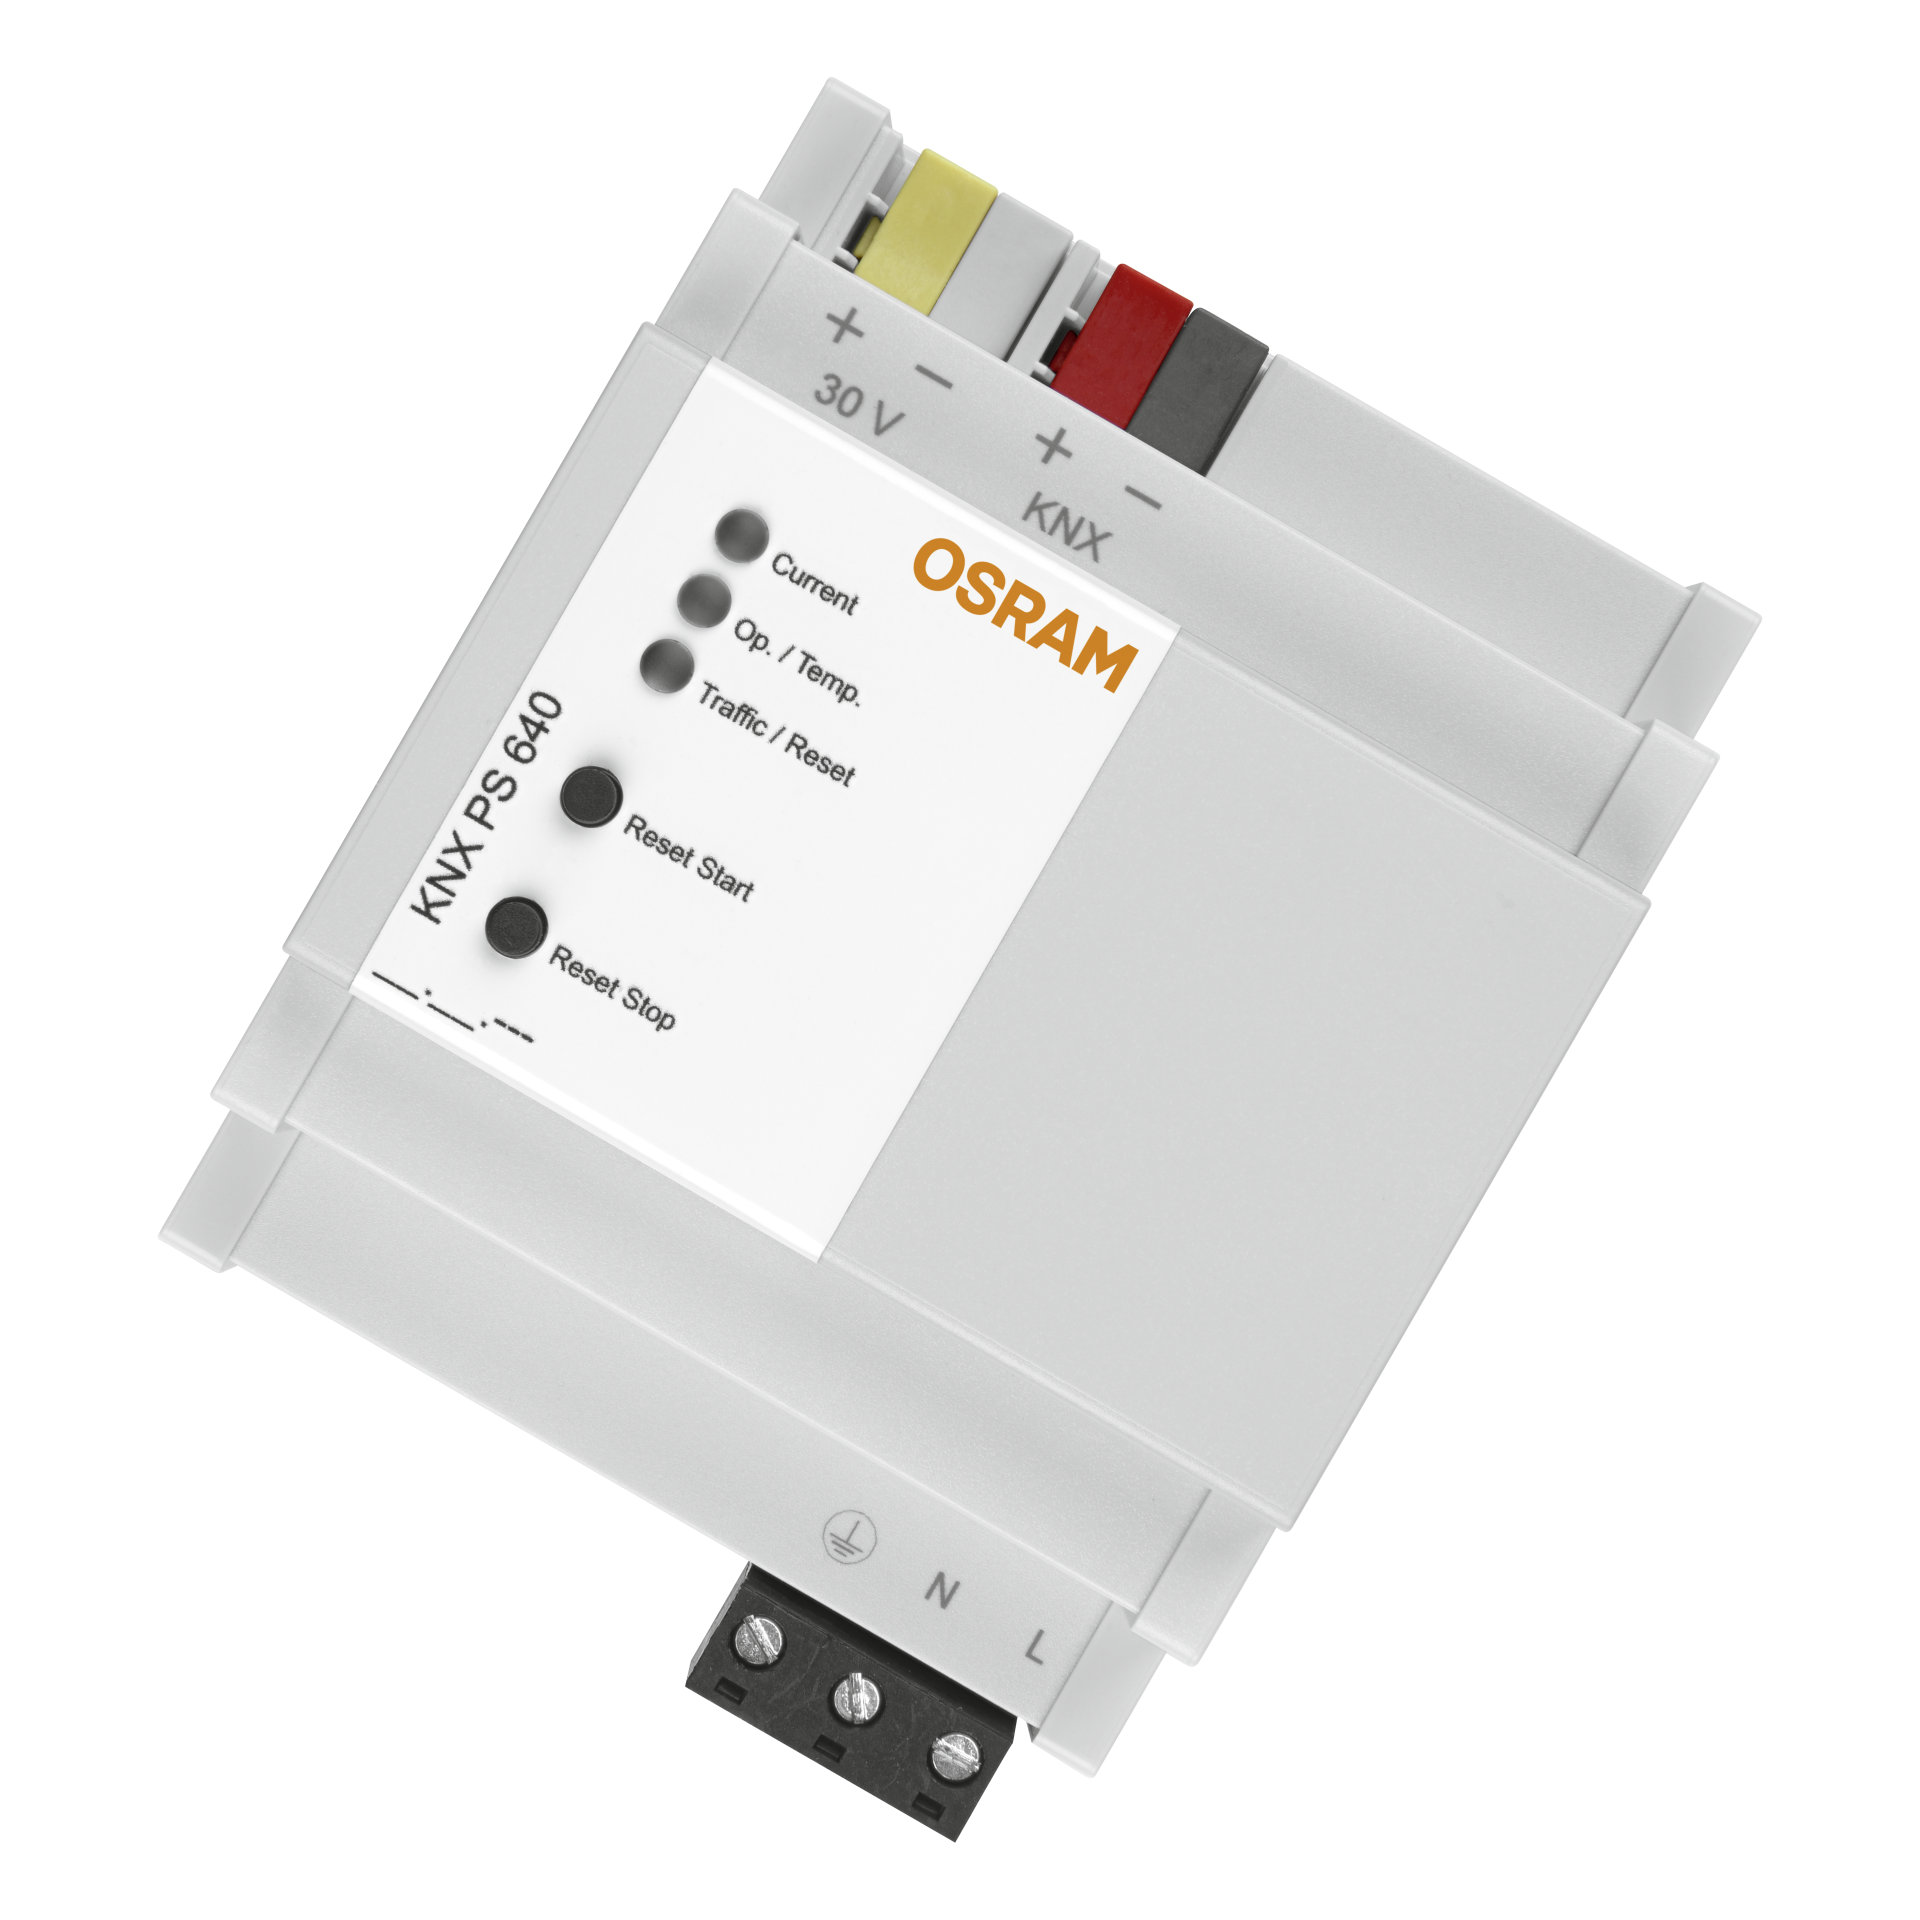 KNX PS 640